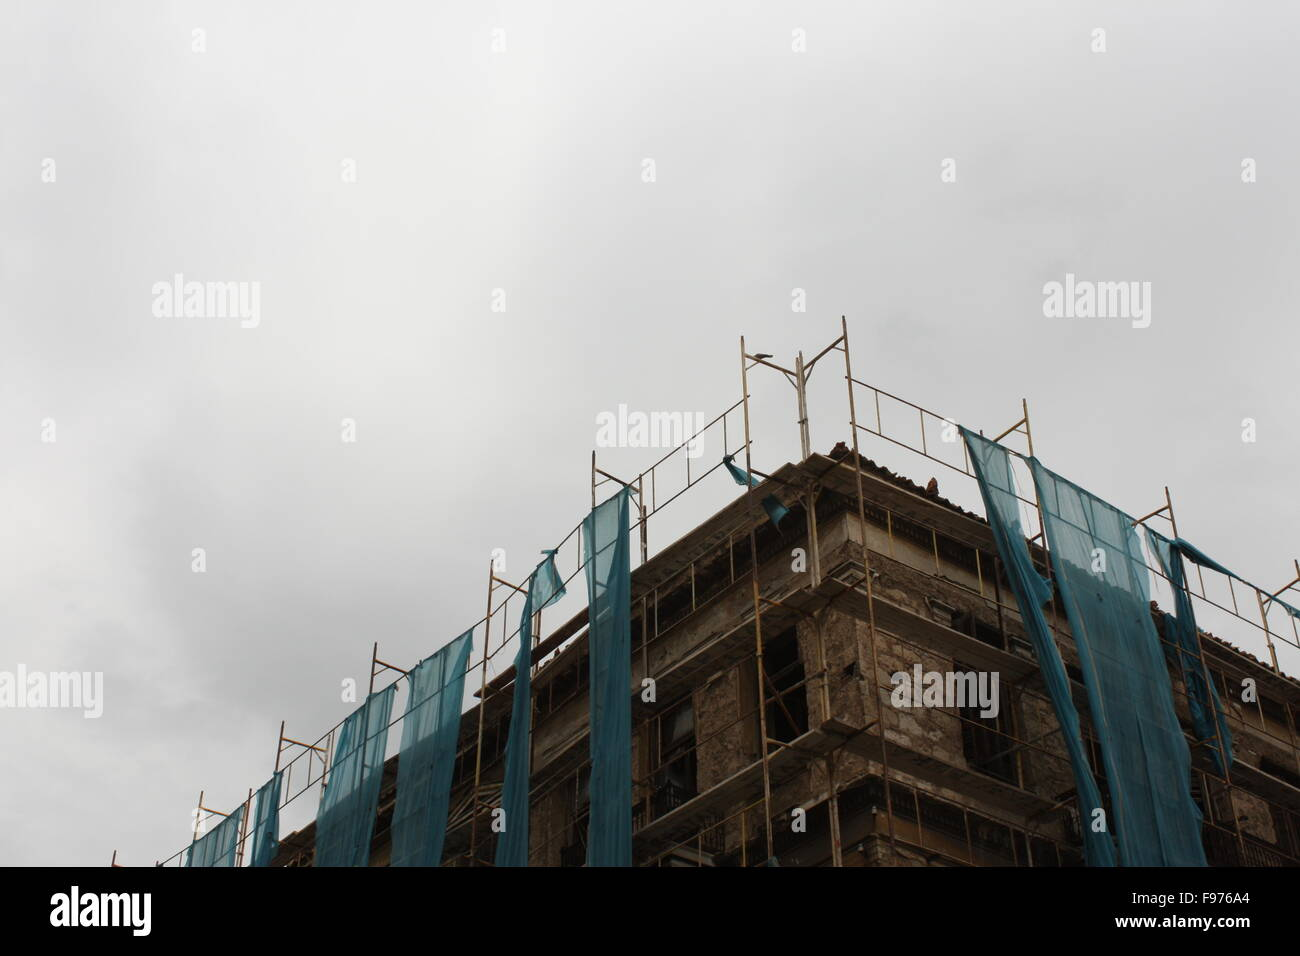 High Section Of An Incomplete Building - Stock Image